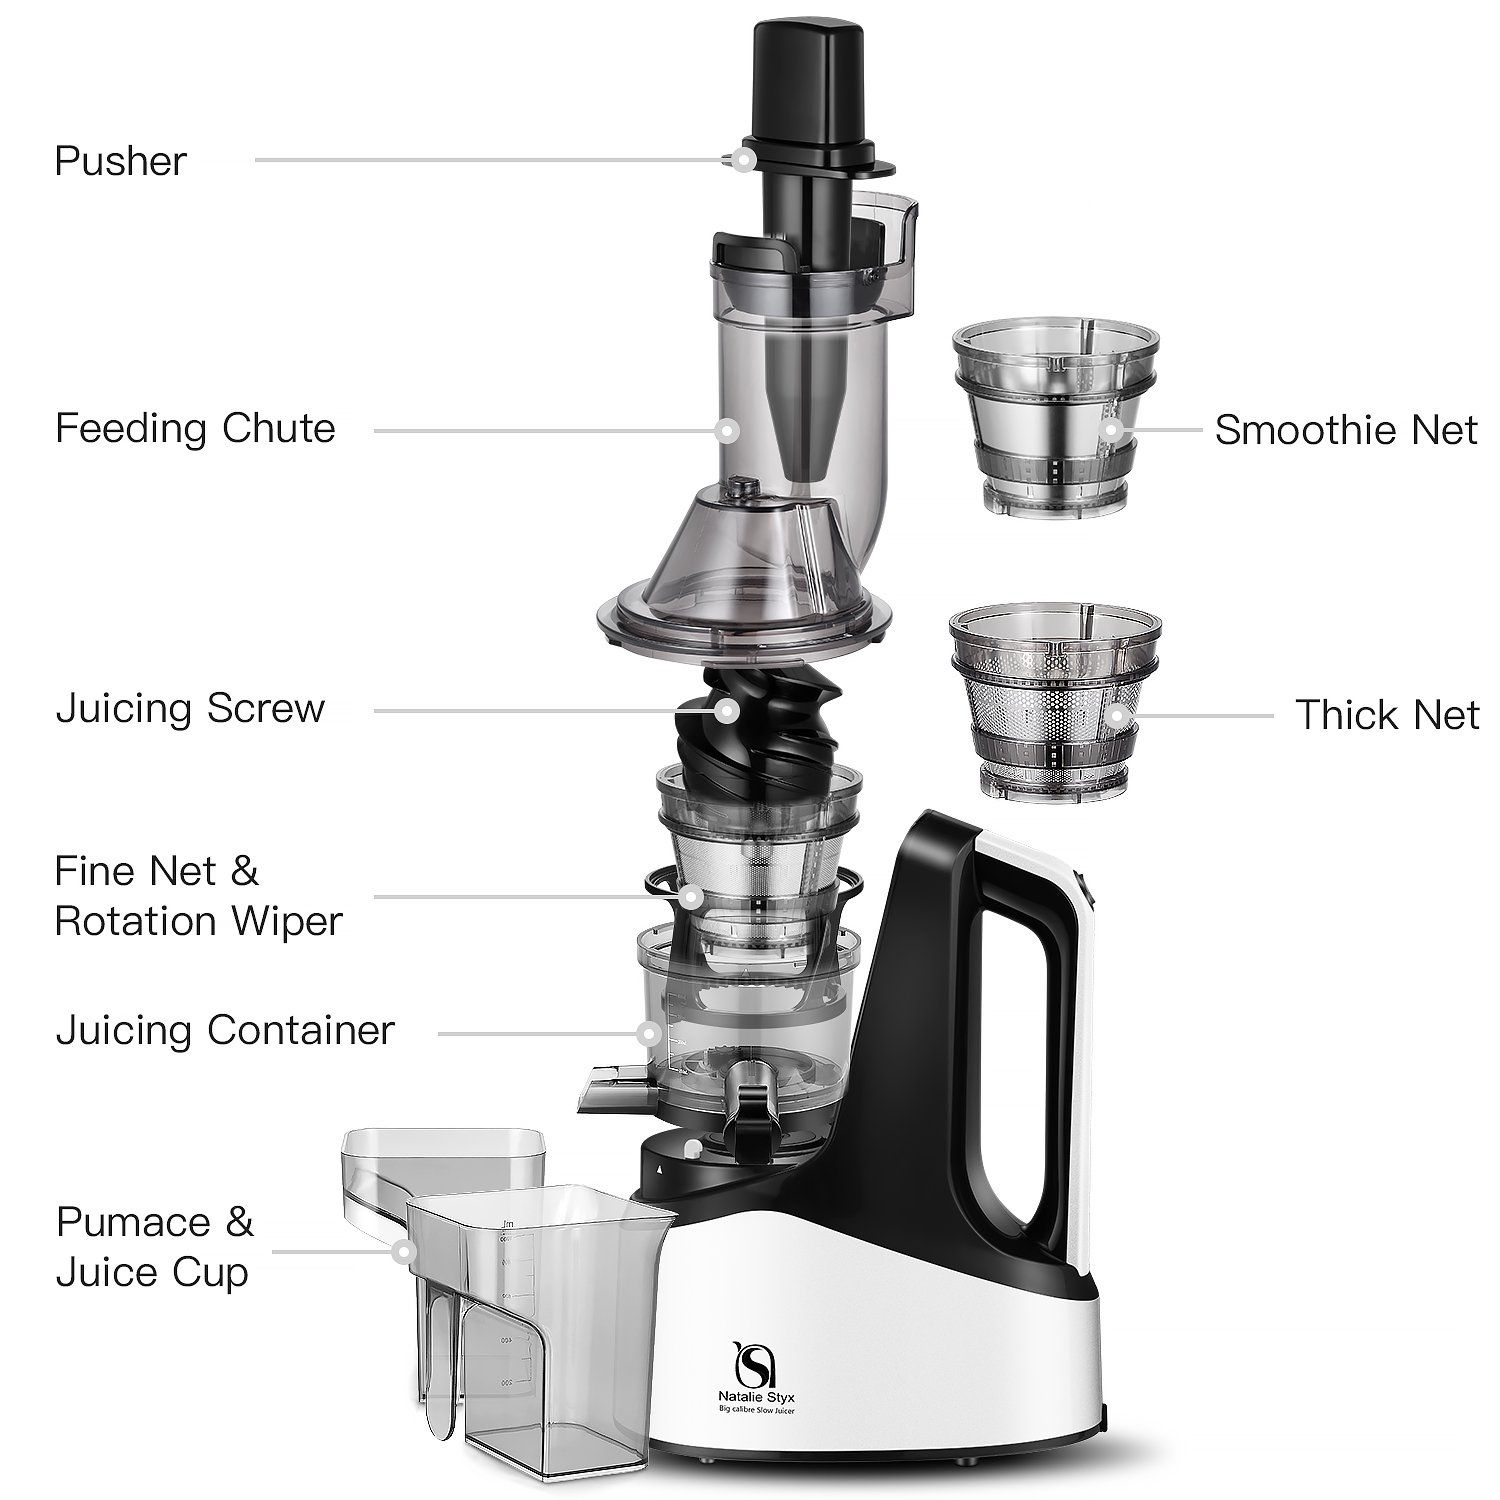 Juicer Masticating Slow Juicer Extractor, Natalie Styx Wide Chute Juice Cold Press Juicer Machine for Fruits & Vegetables, Quiet Motor & Reverse Function, High Juice Yield and Easy to Clean, Silver by Natalie Styx (Image #4)